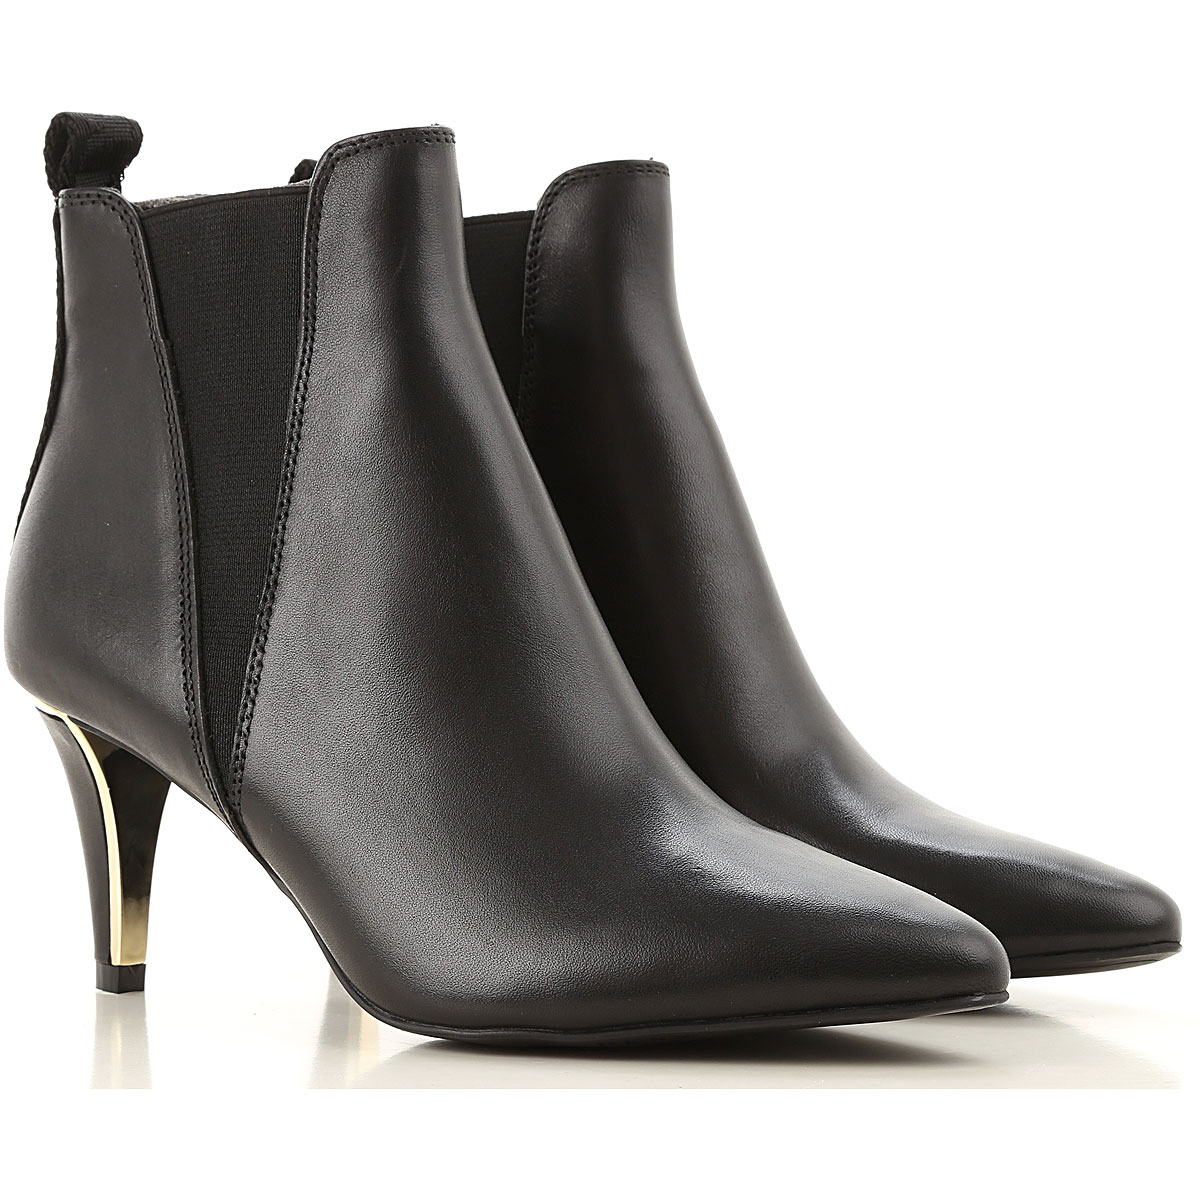 DKNY Boots for Women, Booties On Sale, Black, Leather, 2019, US 6 - UK 3 5 - EU 36 - JP 22 5 US 7 5 - UK 5 - EU 38 - JP 24 US 9 - UK 6 5 - EU 40 - JP